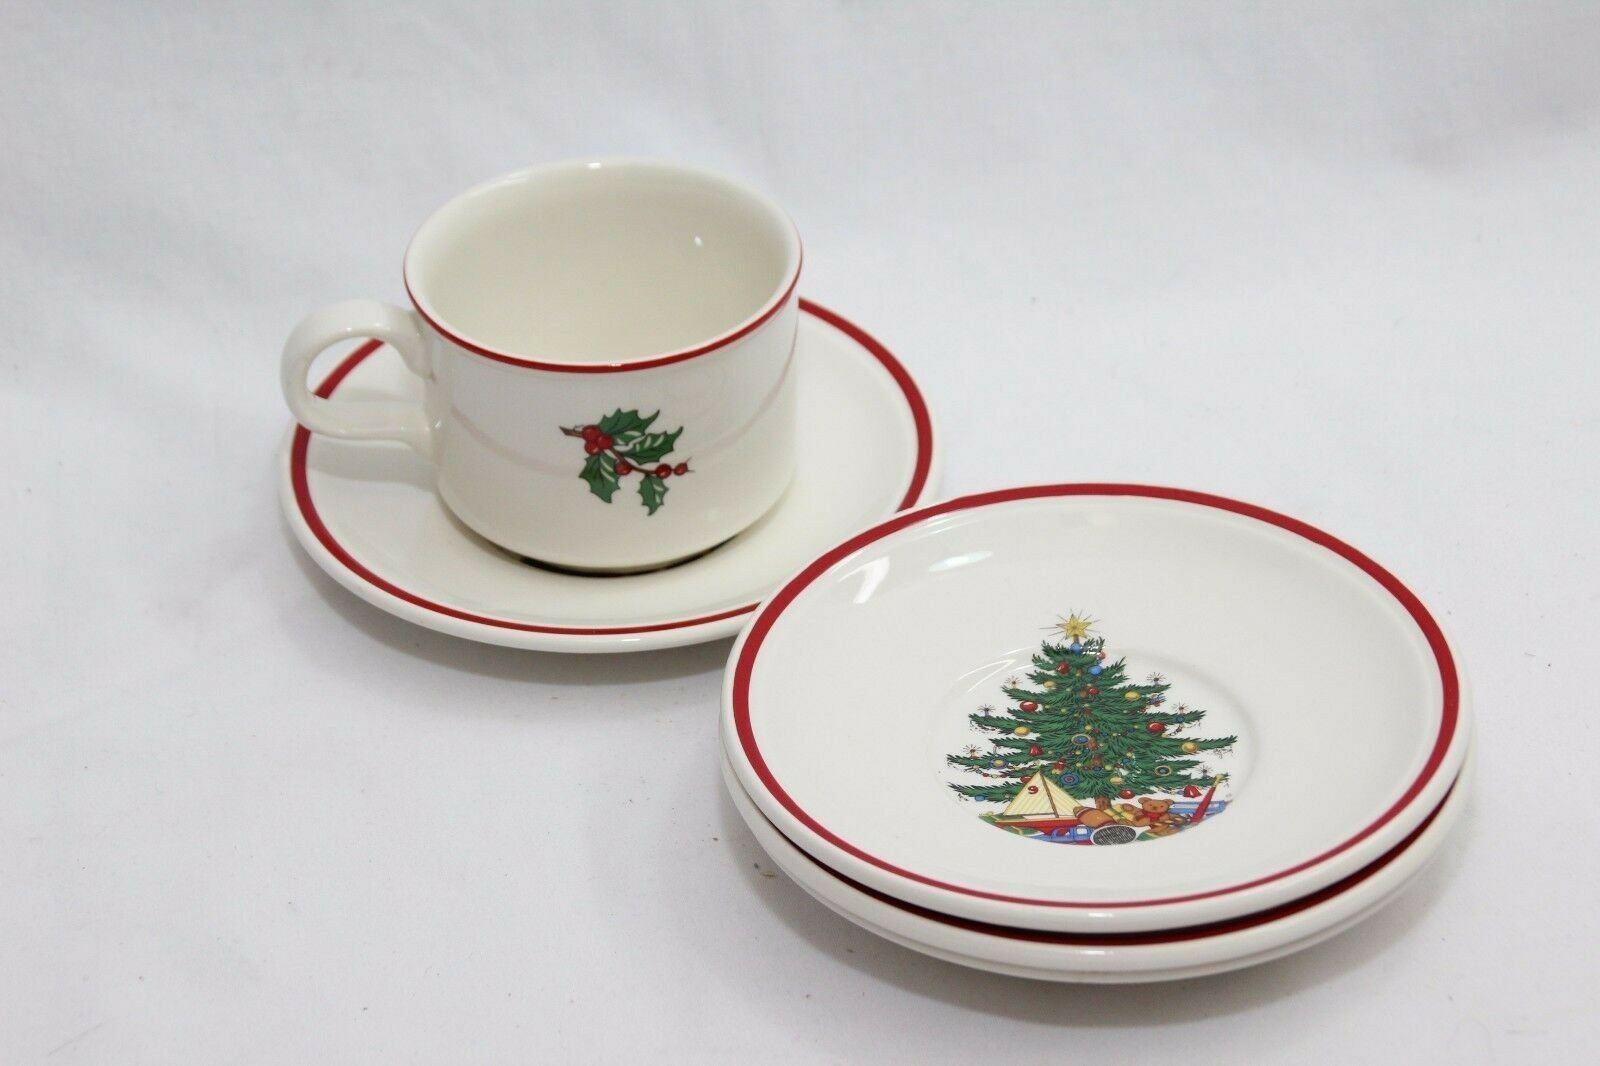 Primary image for Cuthbertson American Xmas Tree Saucers and Cup